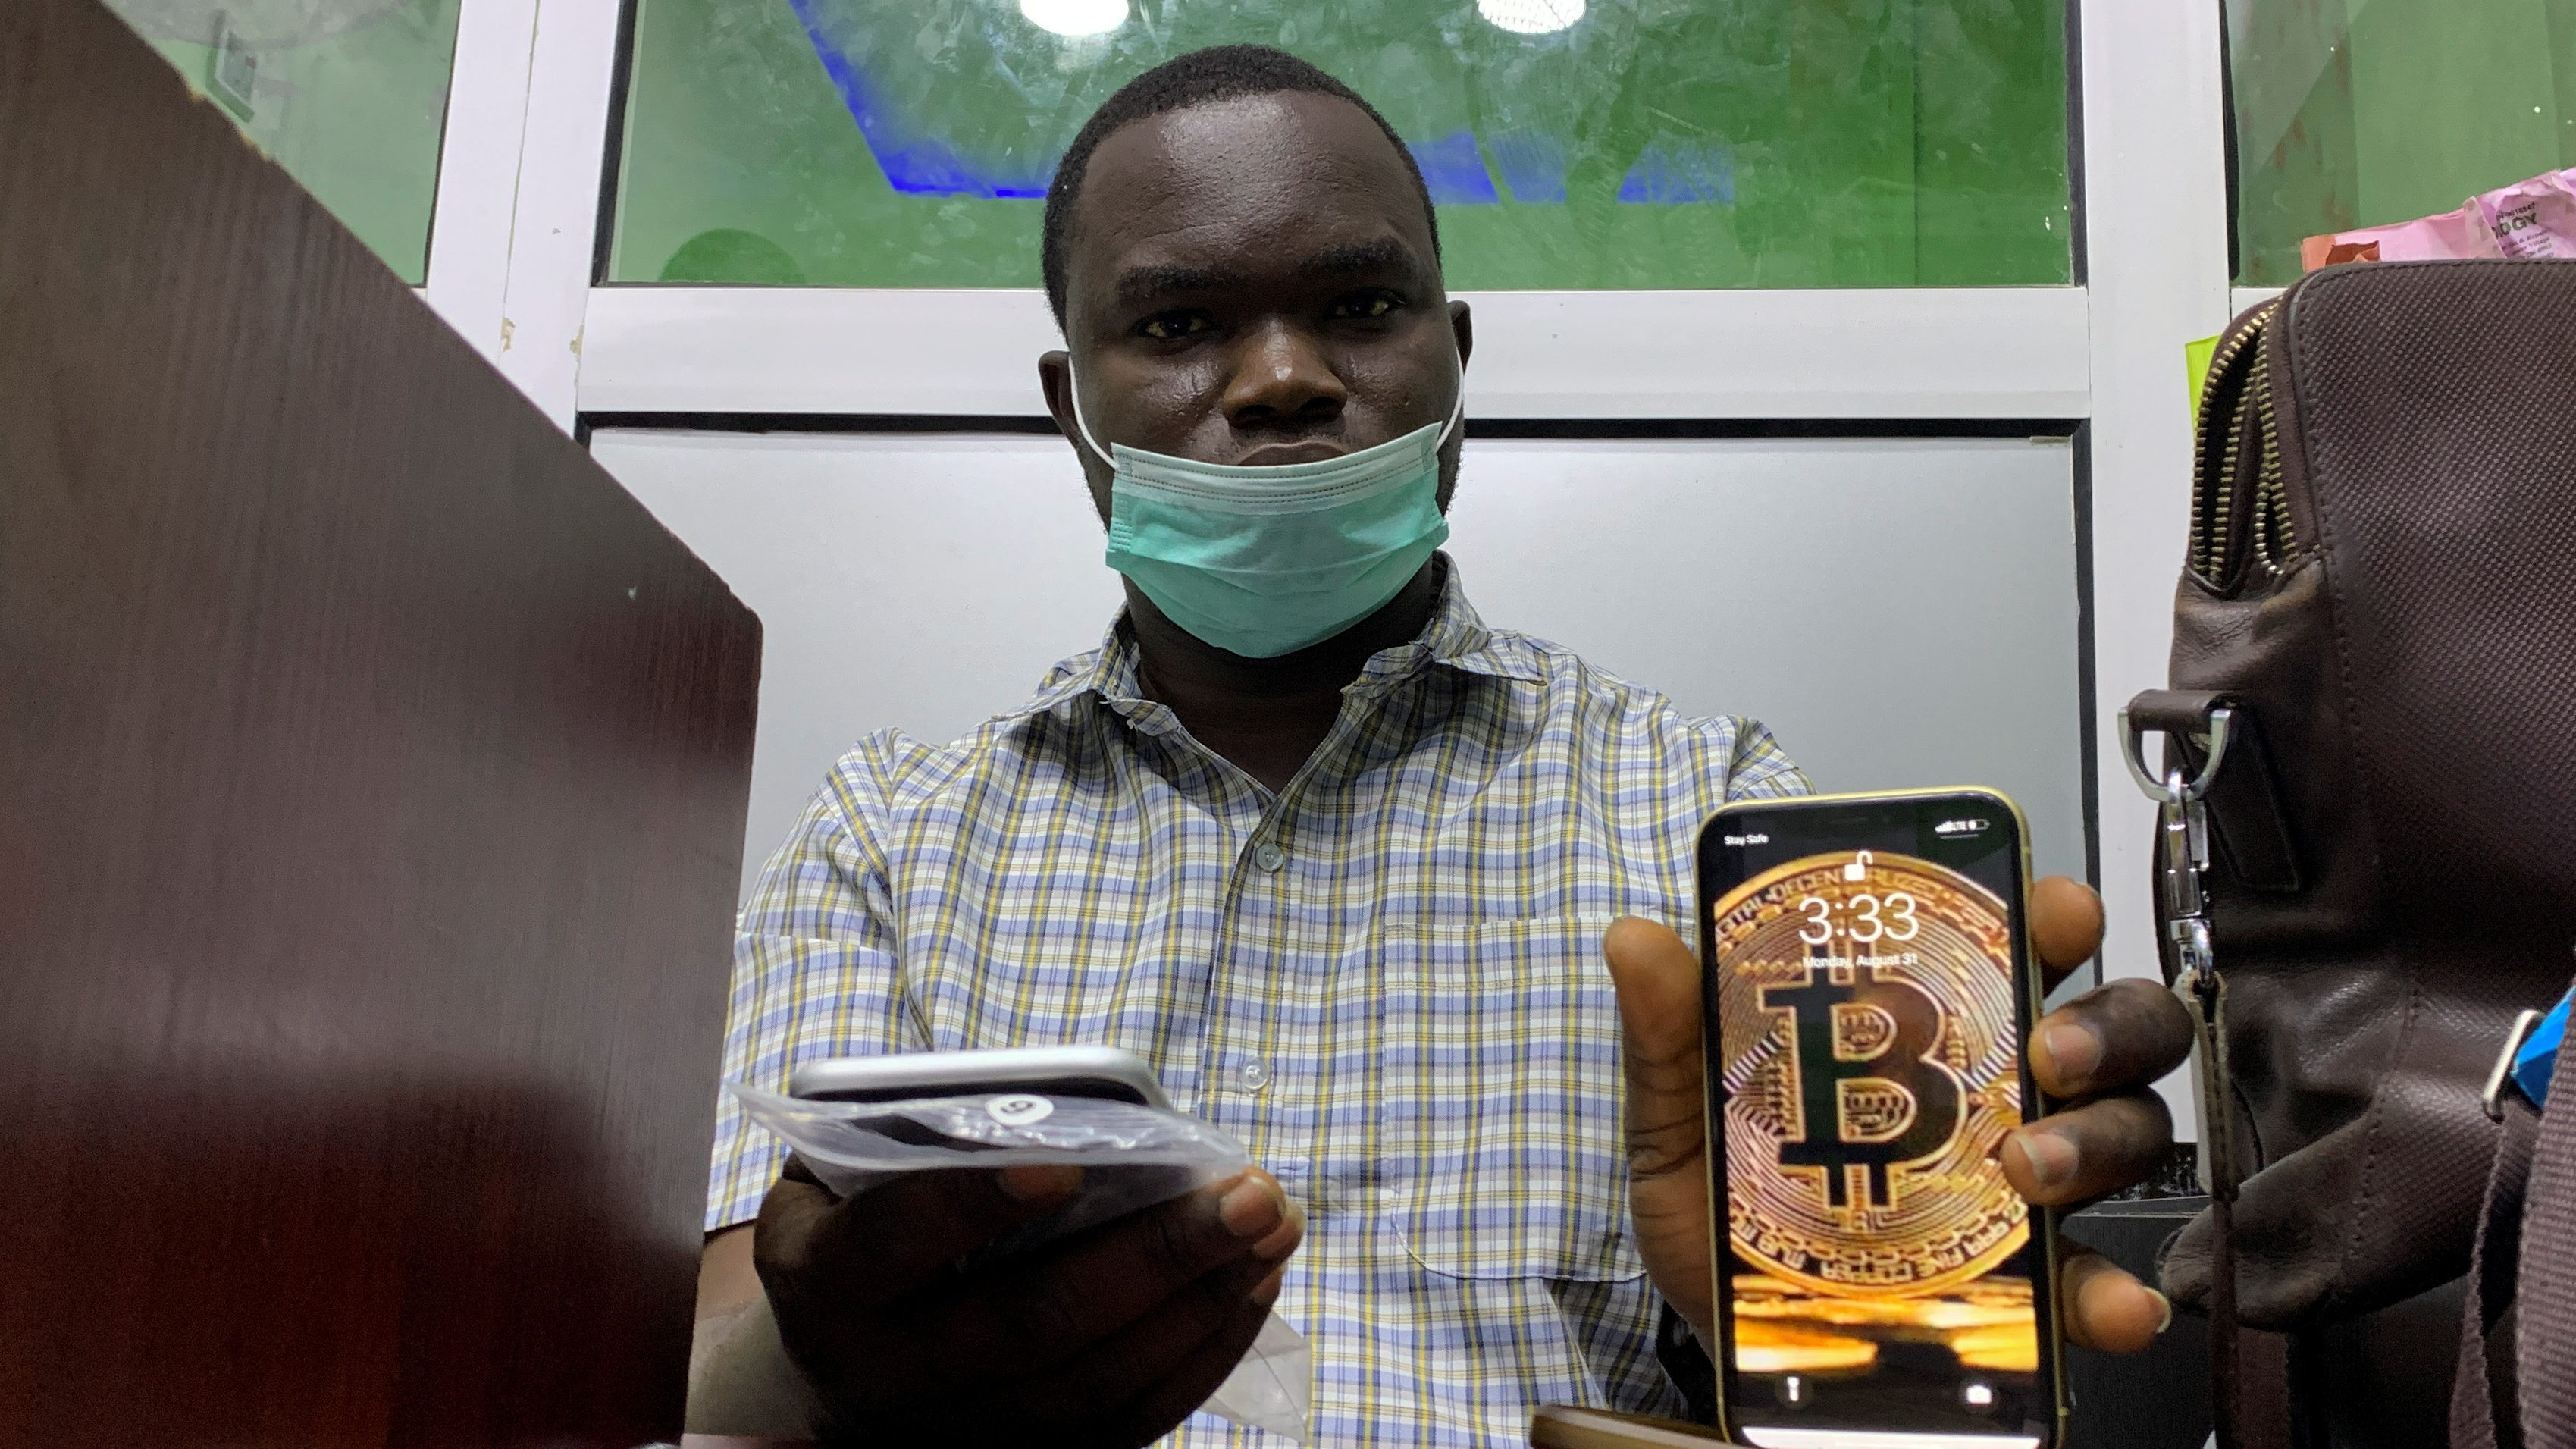 An image of a man posing with a phone that shows a bitcoin-inspired wallpaper